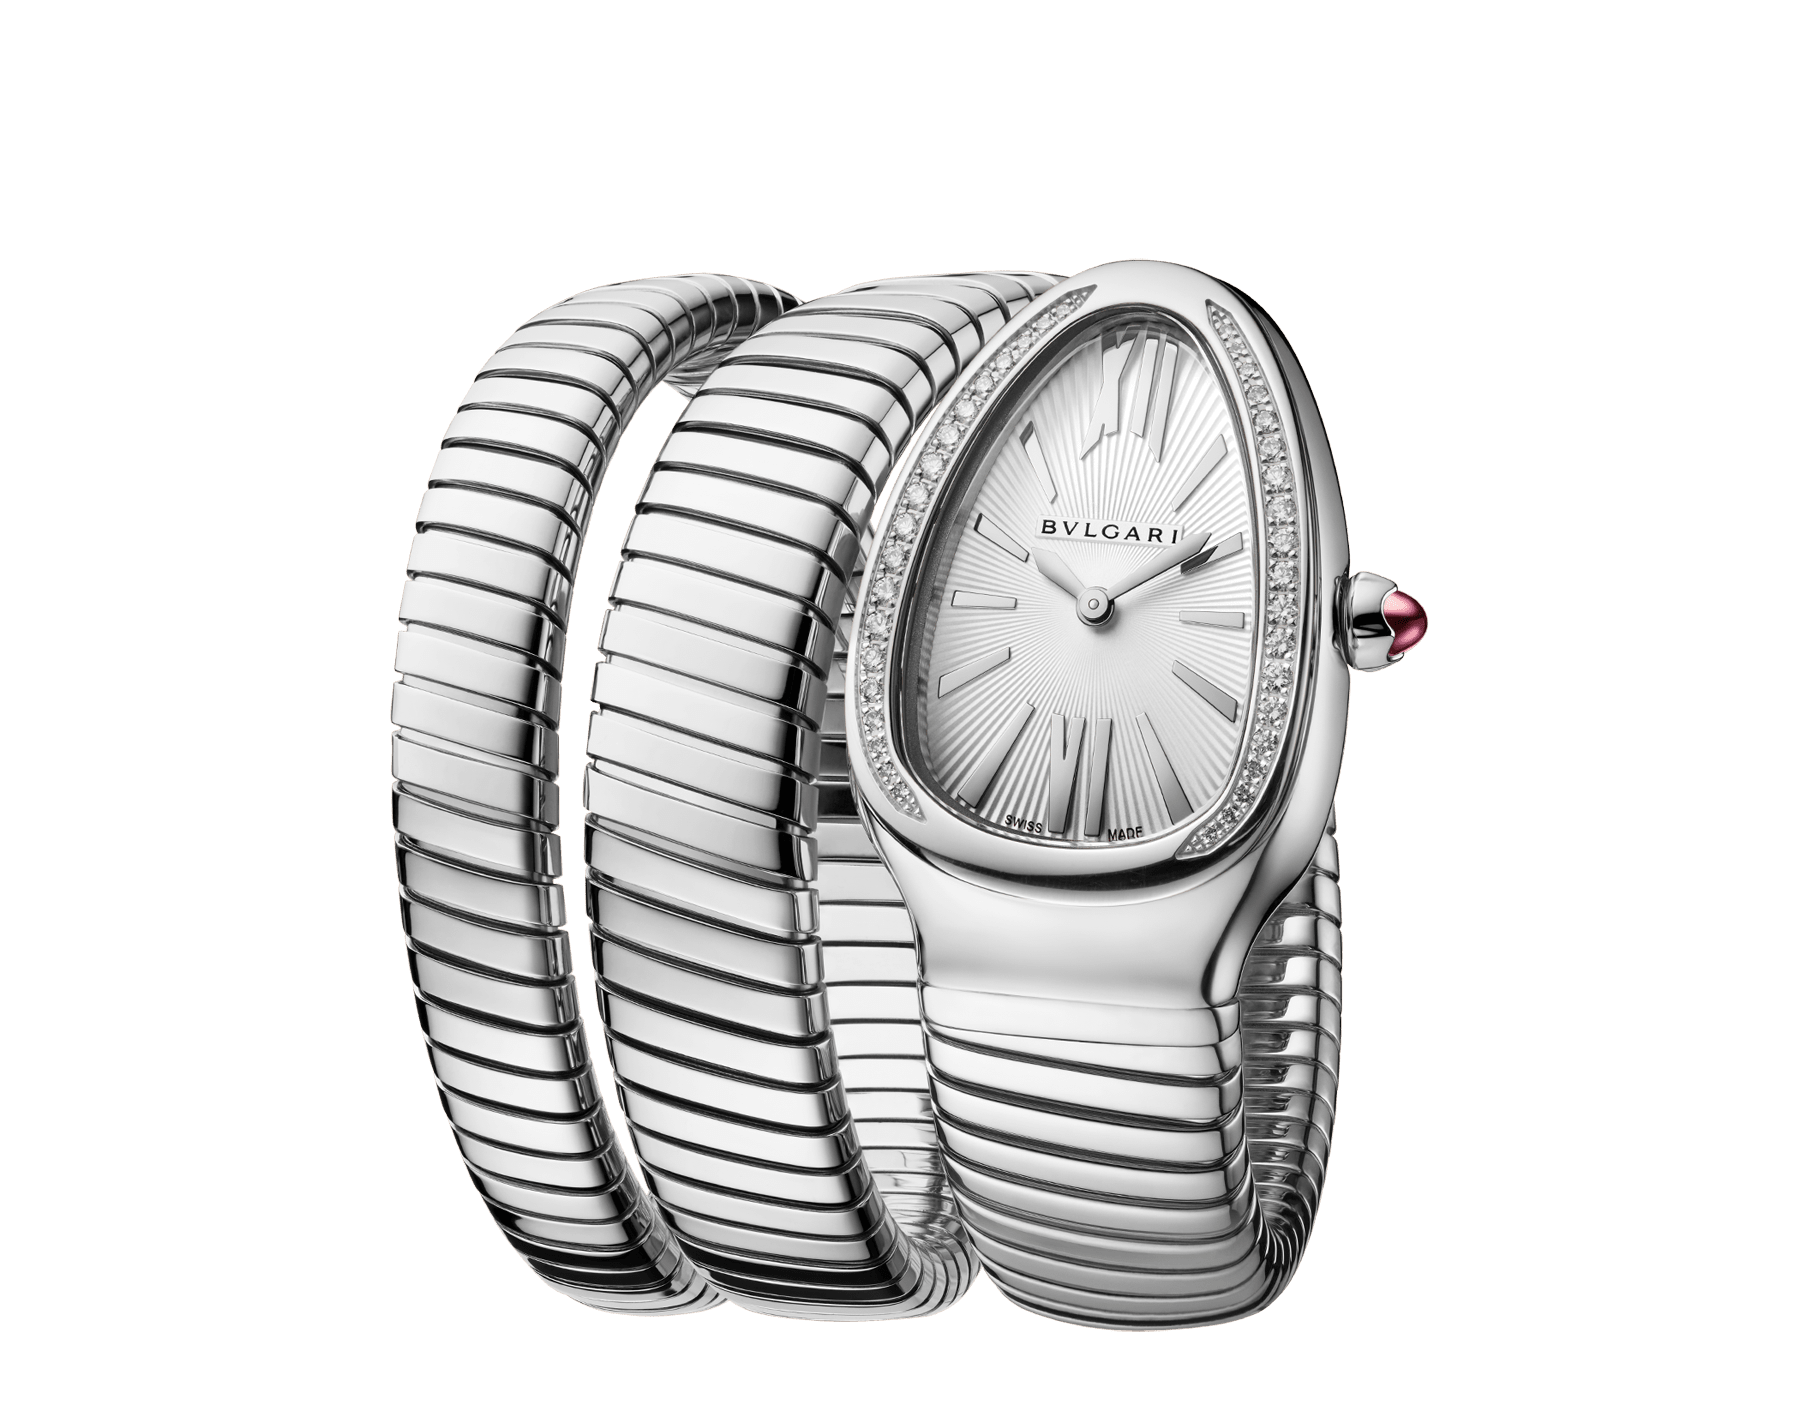 Serpenti Tubogas double spiral watch in stainless steel case and bracelet, bezel set with brilliant cut diamonds and silver opaline dial. 101910 image 2